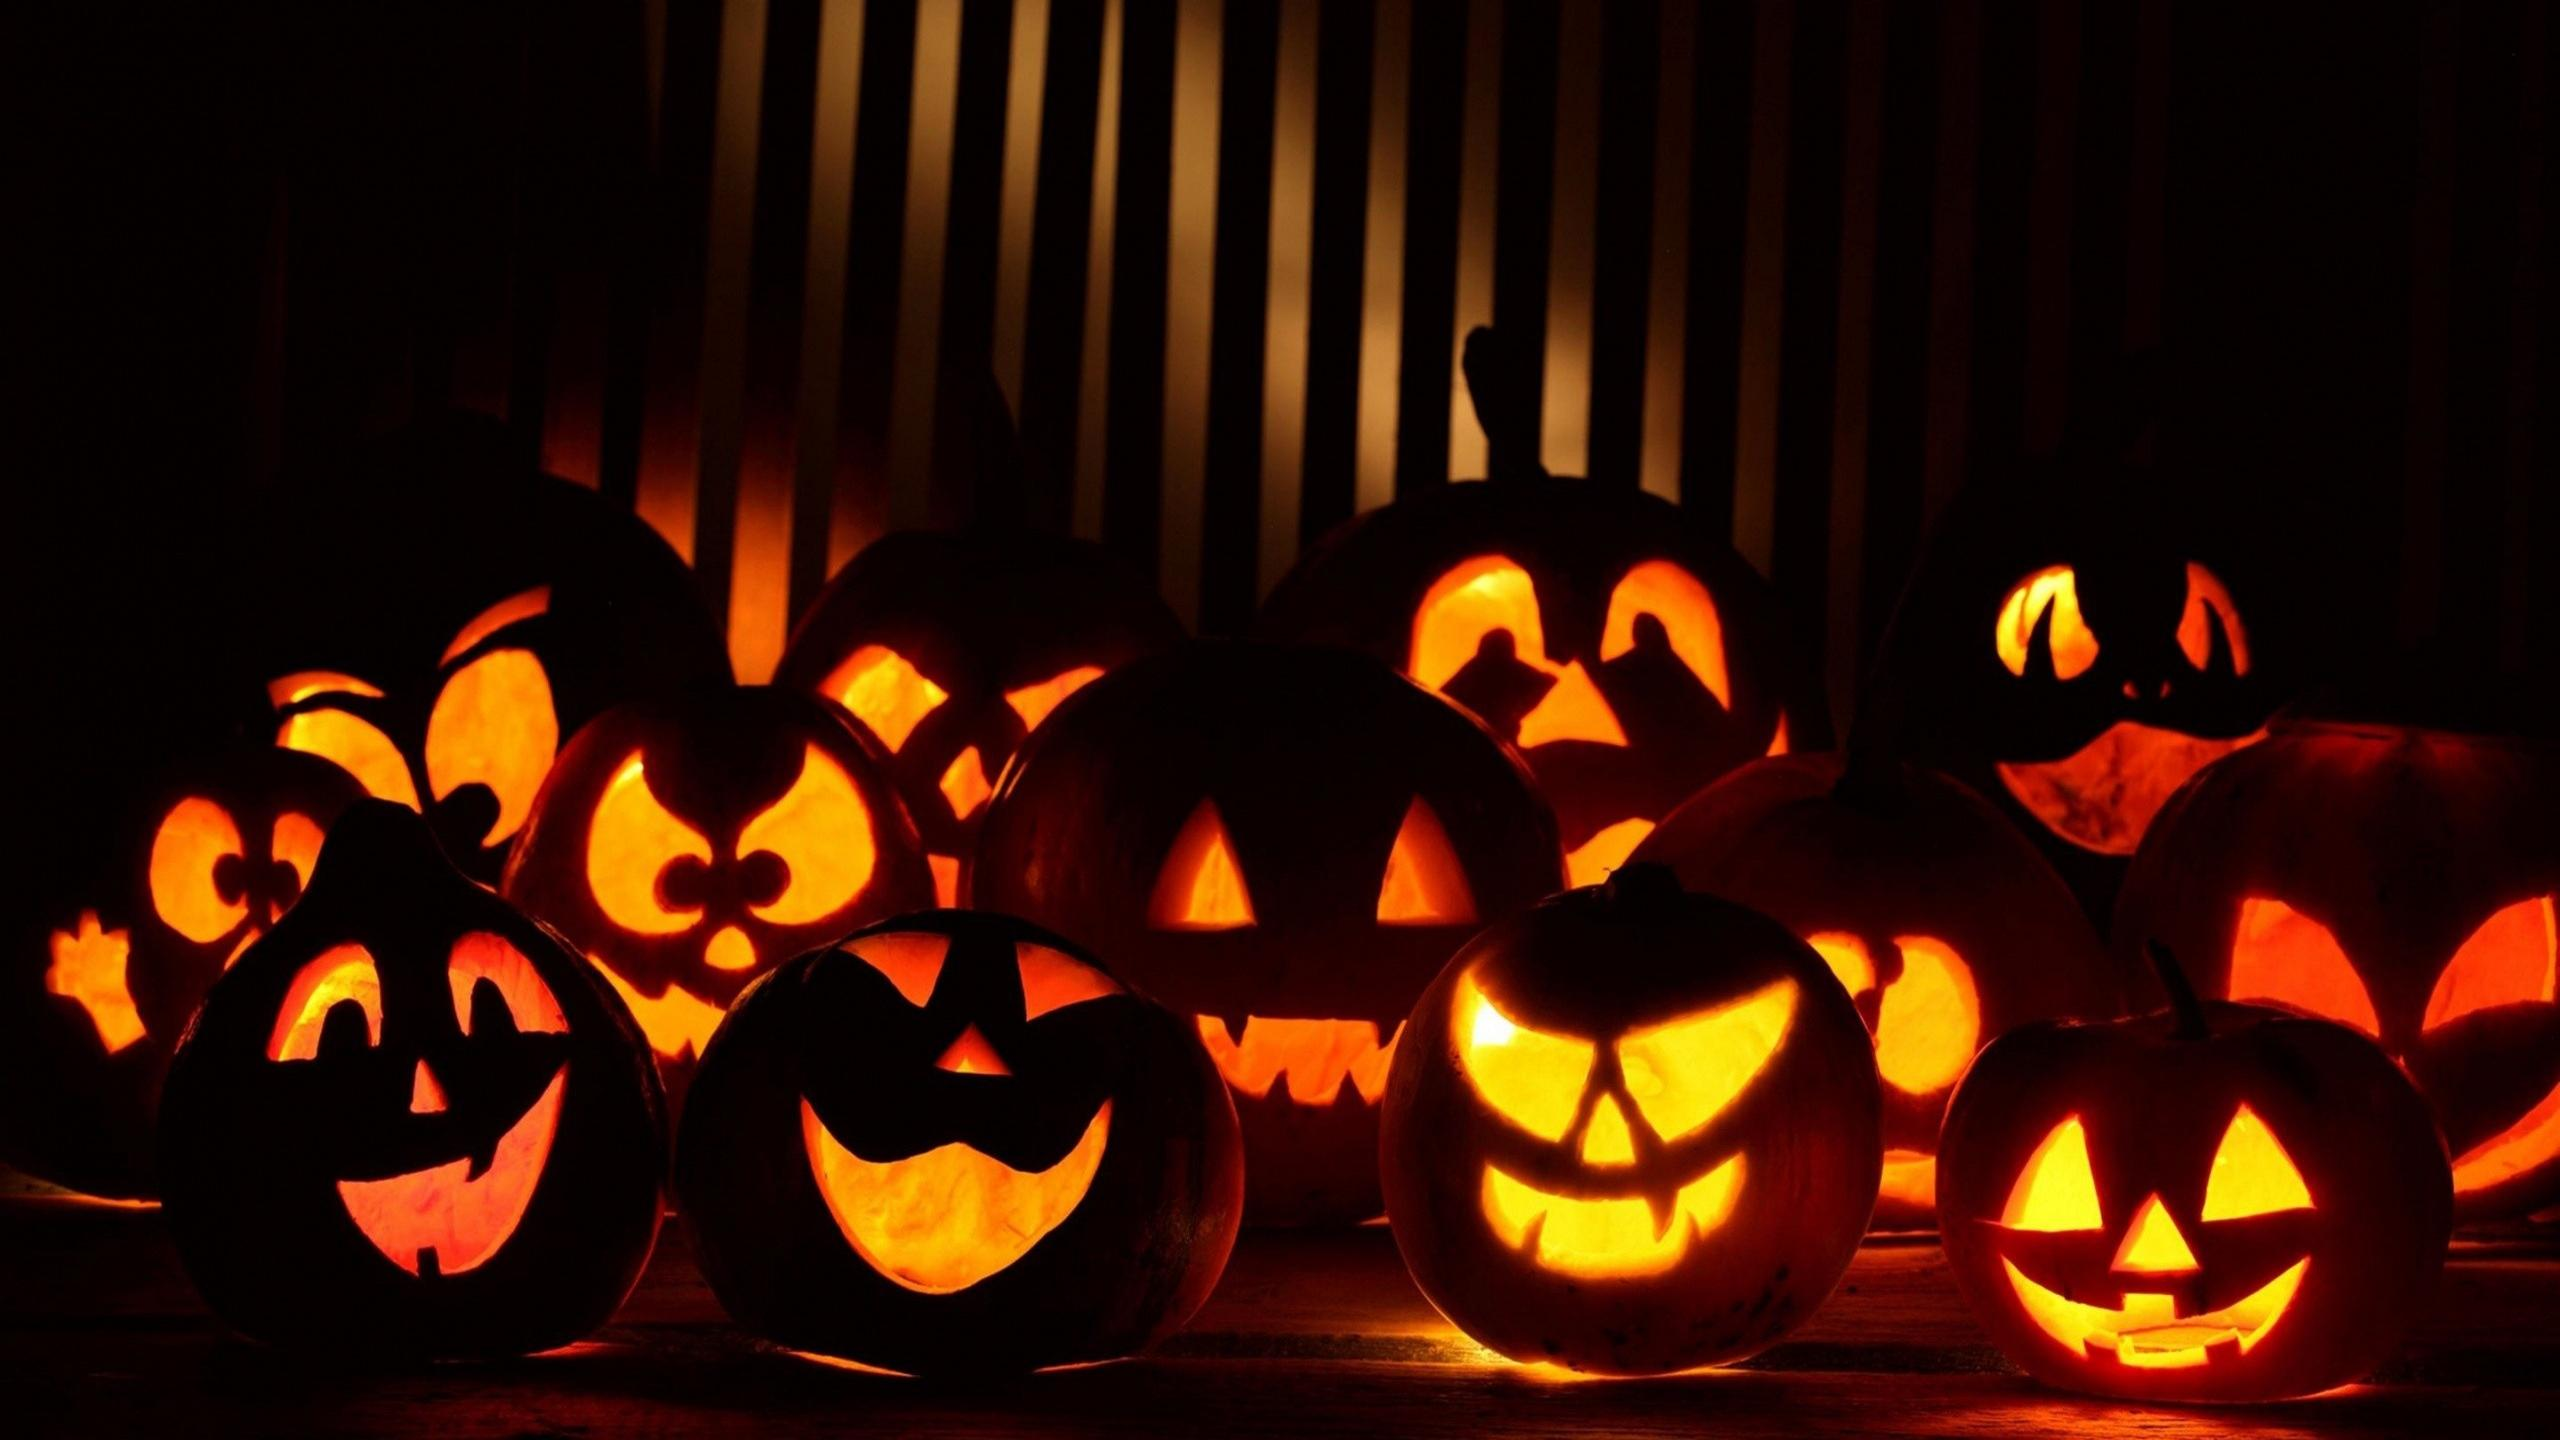 Halloween Pumpkins HD Wallpapers